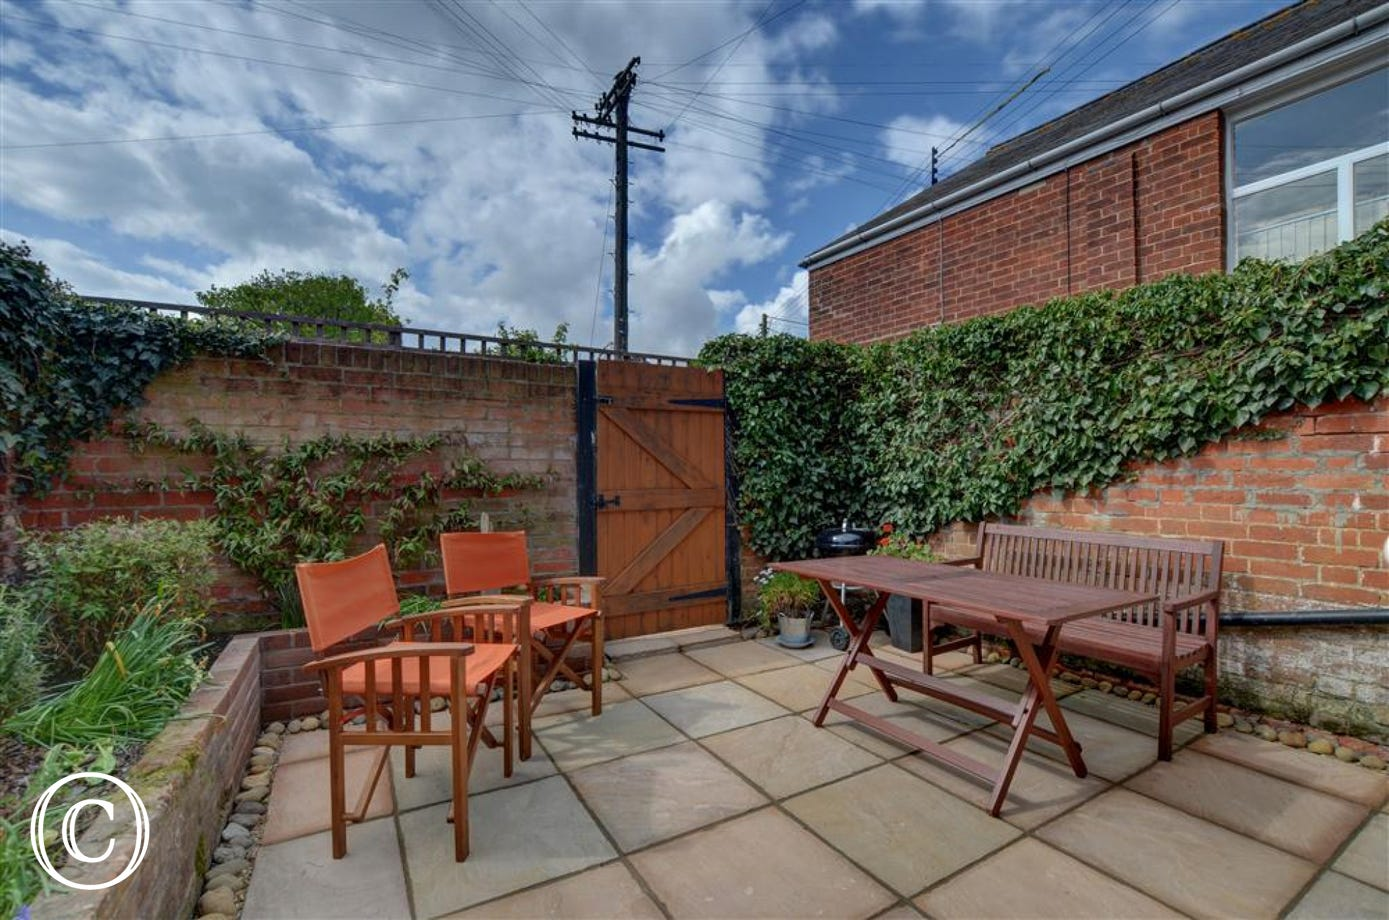 Enjoy this paved courtyard garden with rear access and plenty of seating to enjoy the sunshine.